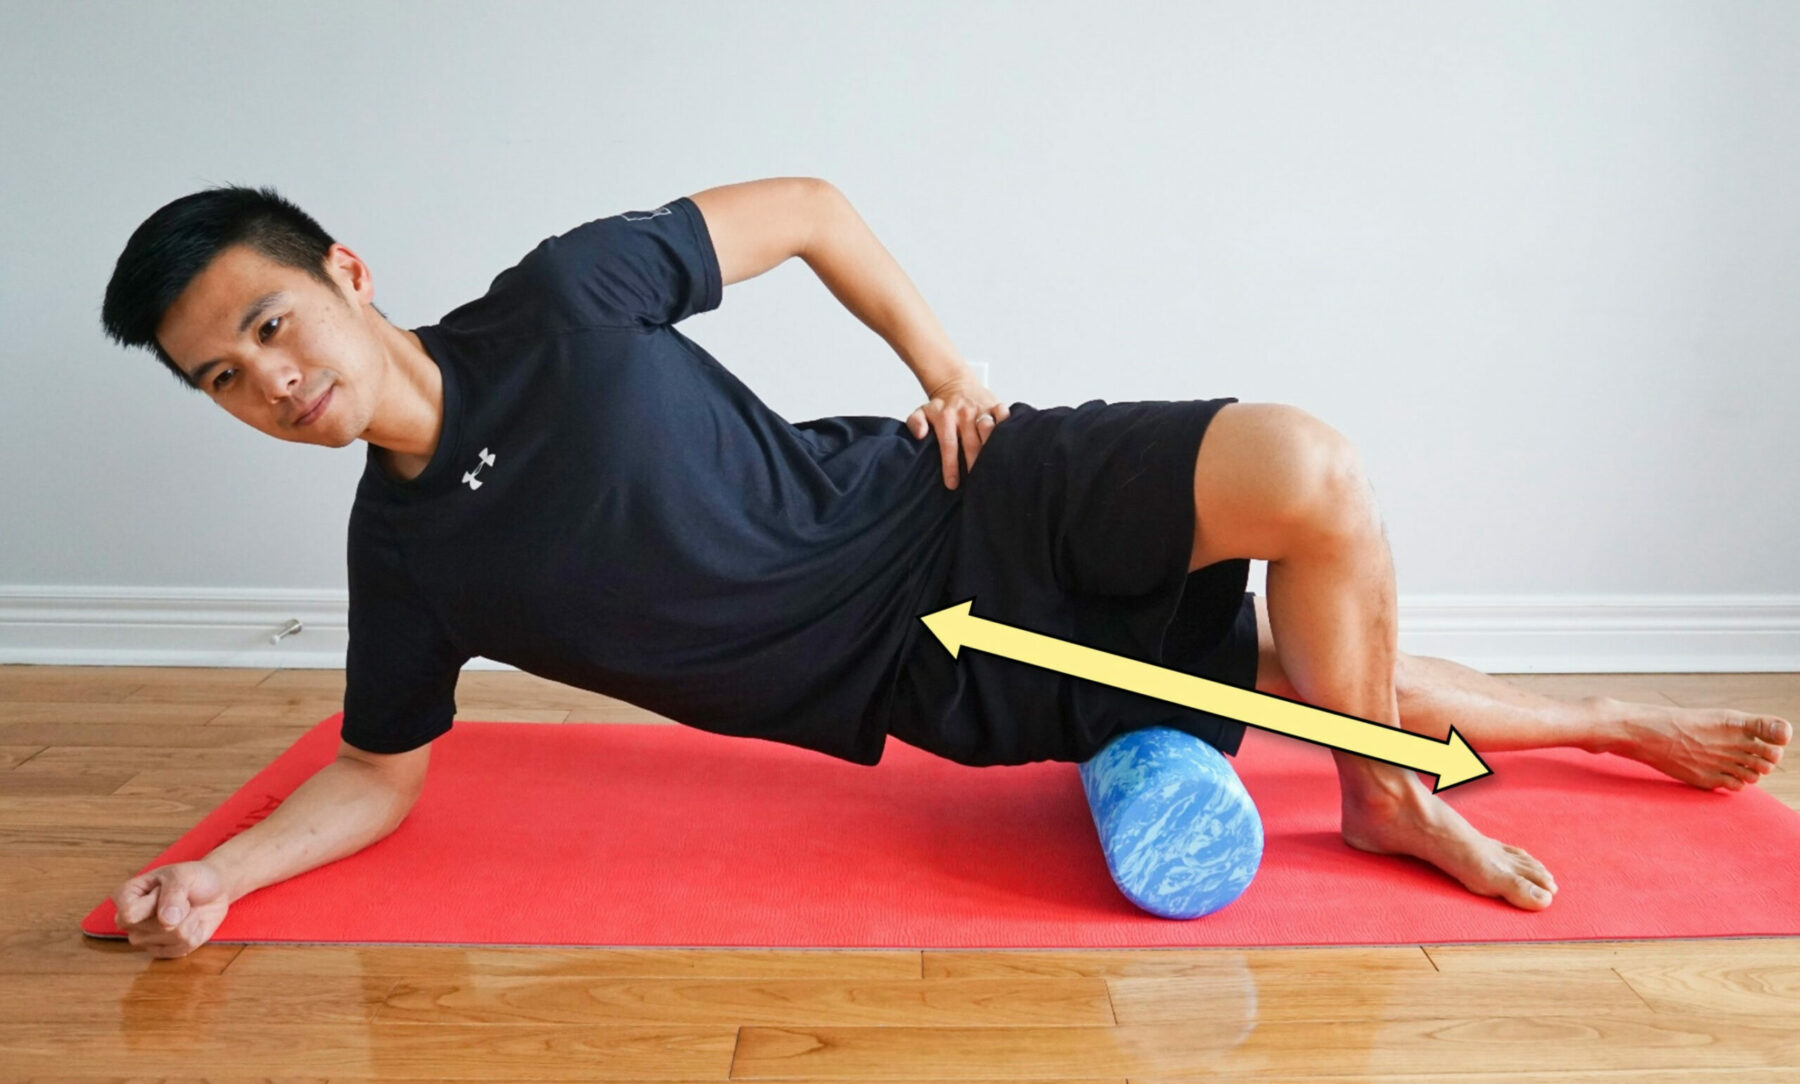 man streching his IT band while side-lying on a roller